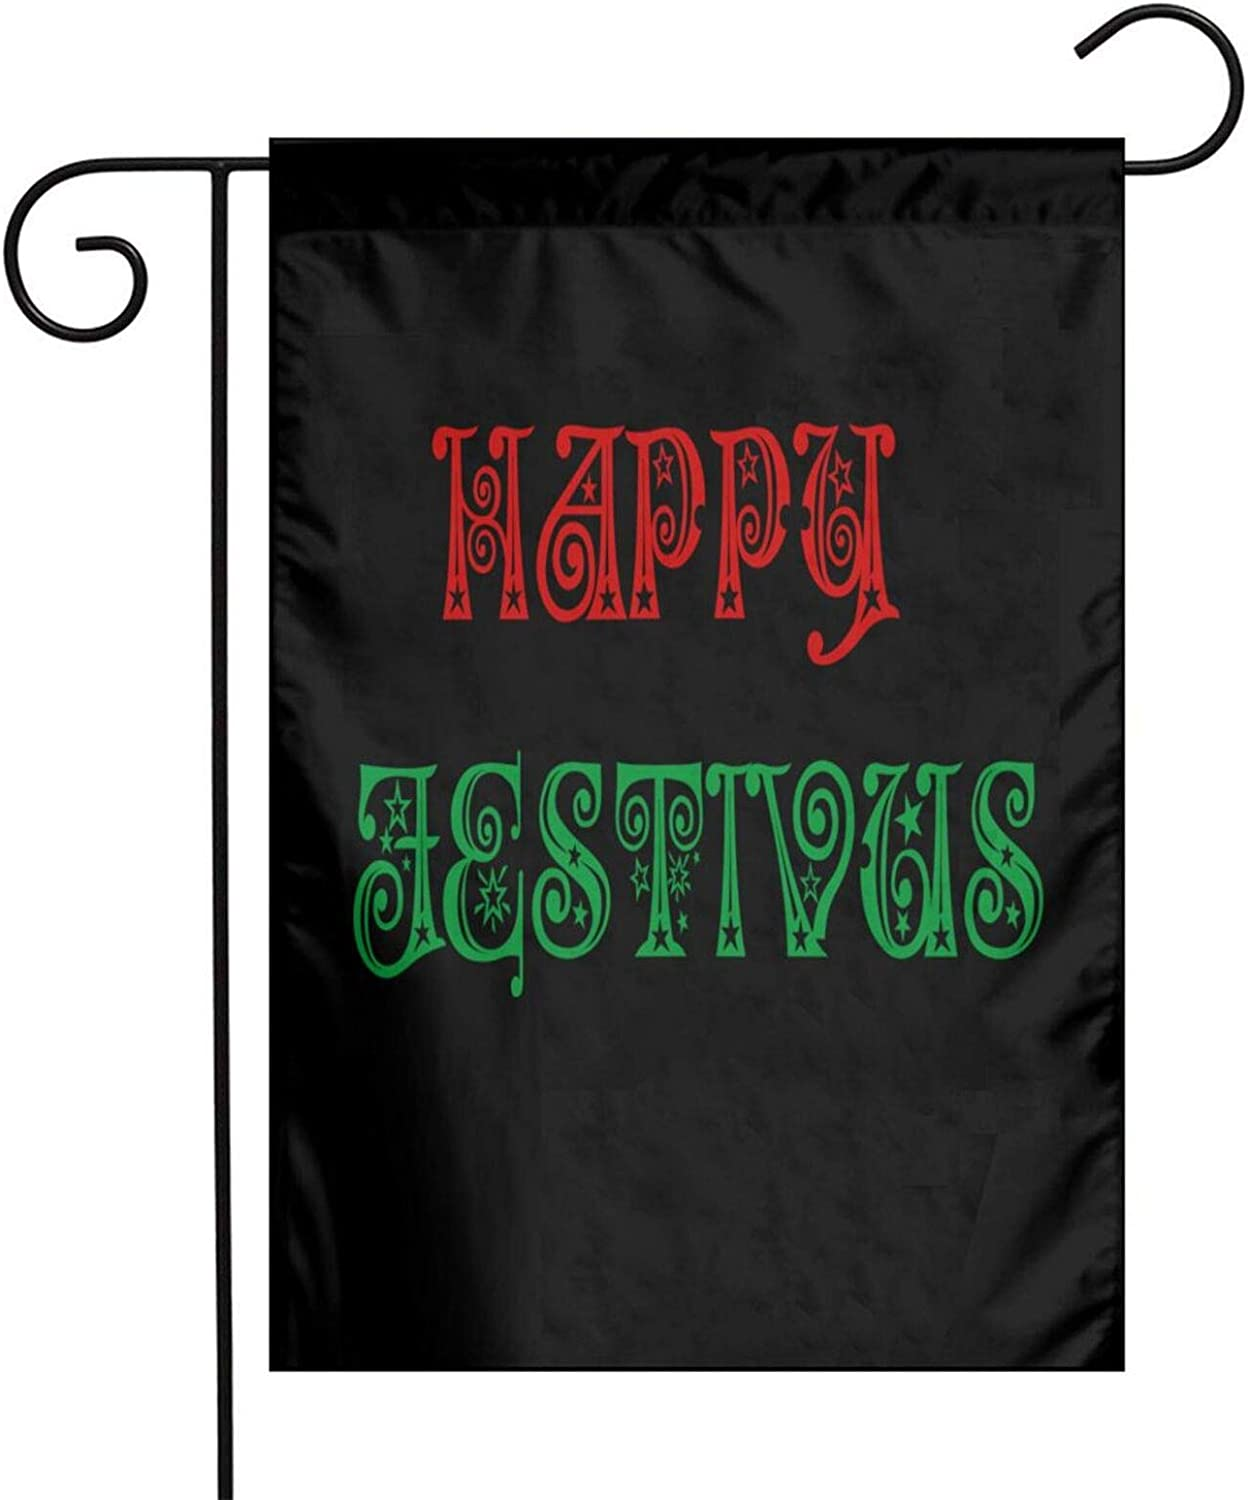 Opplsh Hdrejn Happy Festivus Garden Flag, Yard Flag to Bright Up Your Garden 12